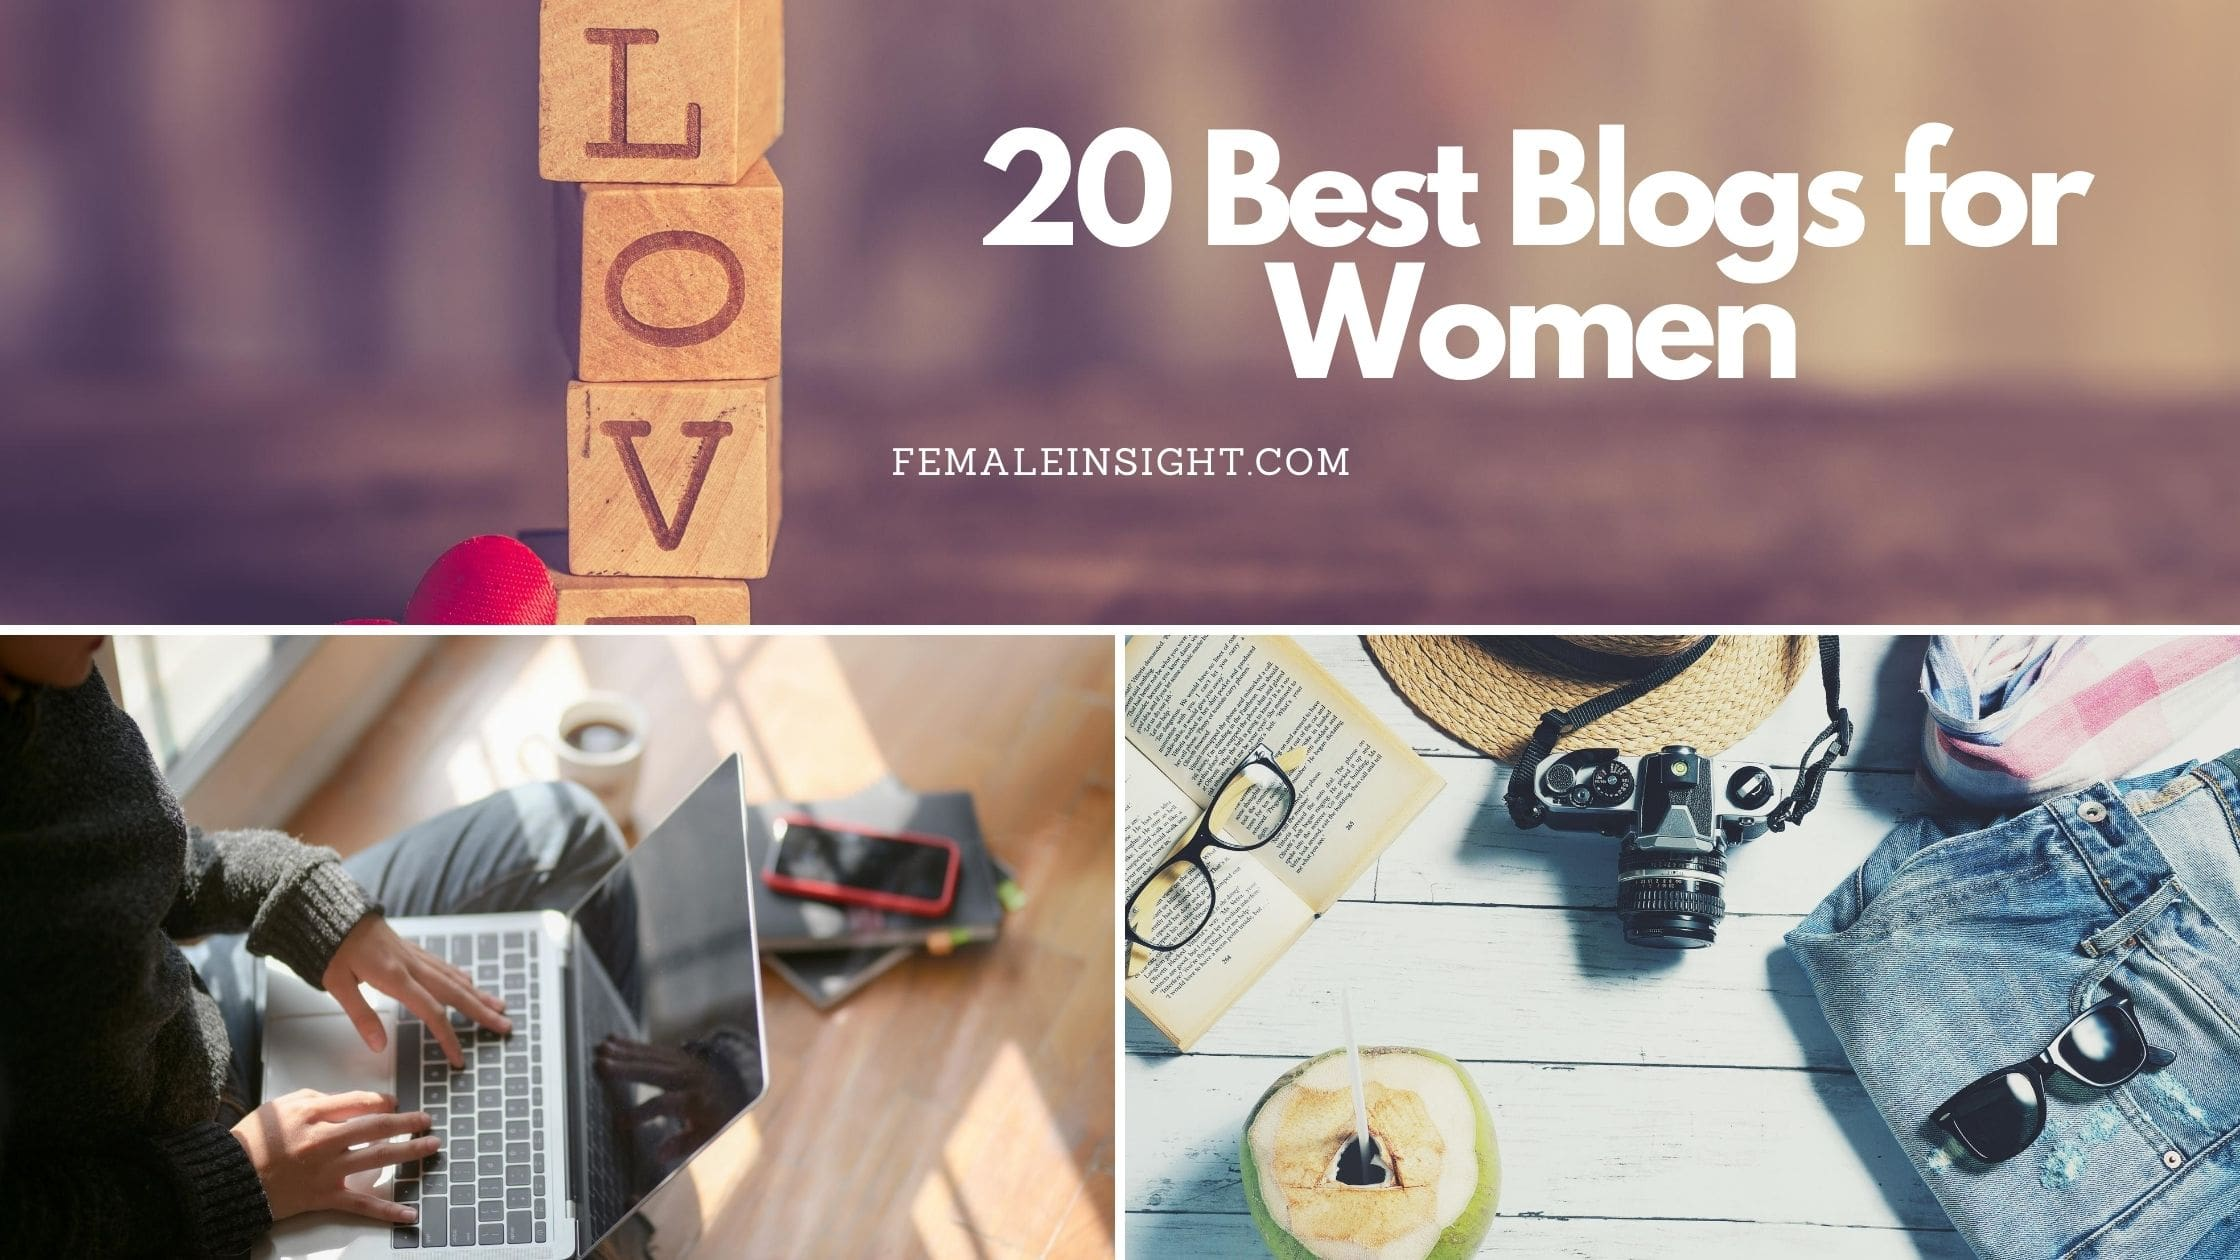 20 Best Blogs for Women